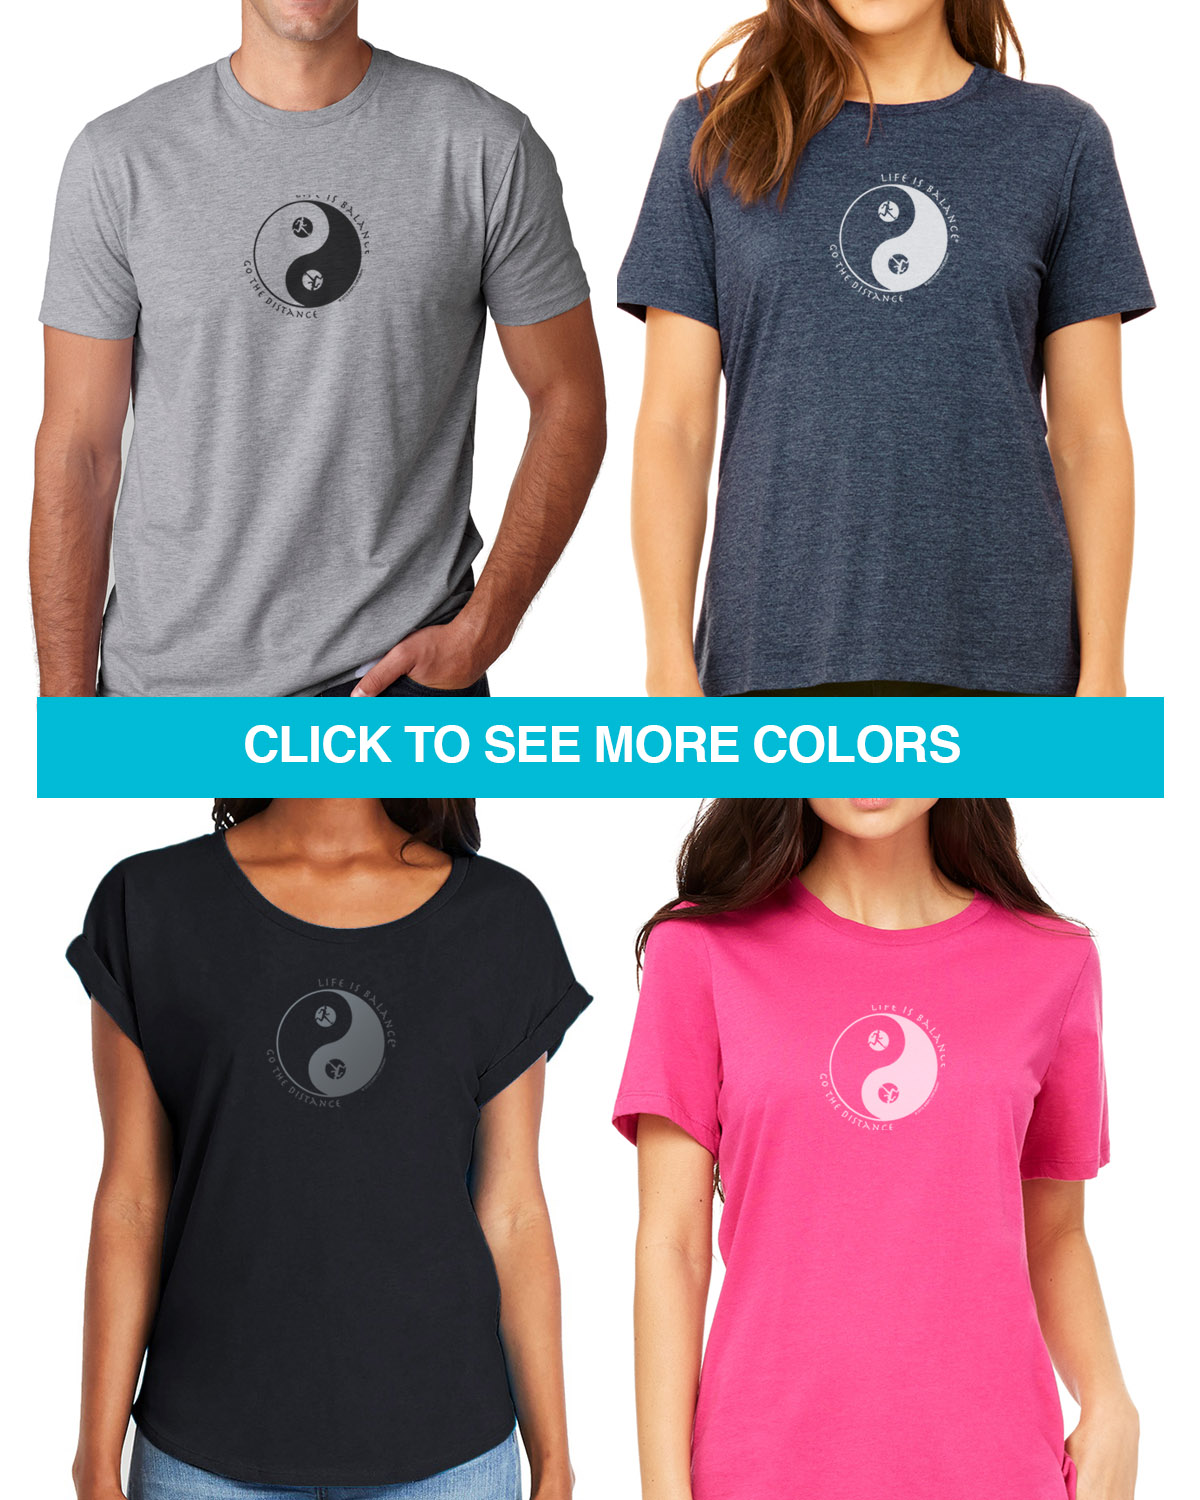 Short sleeve running/jogging t-shirts for Men and Women. Women's fitted styles and a unisex style for men or for women